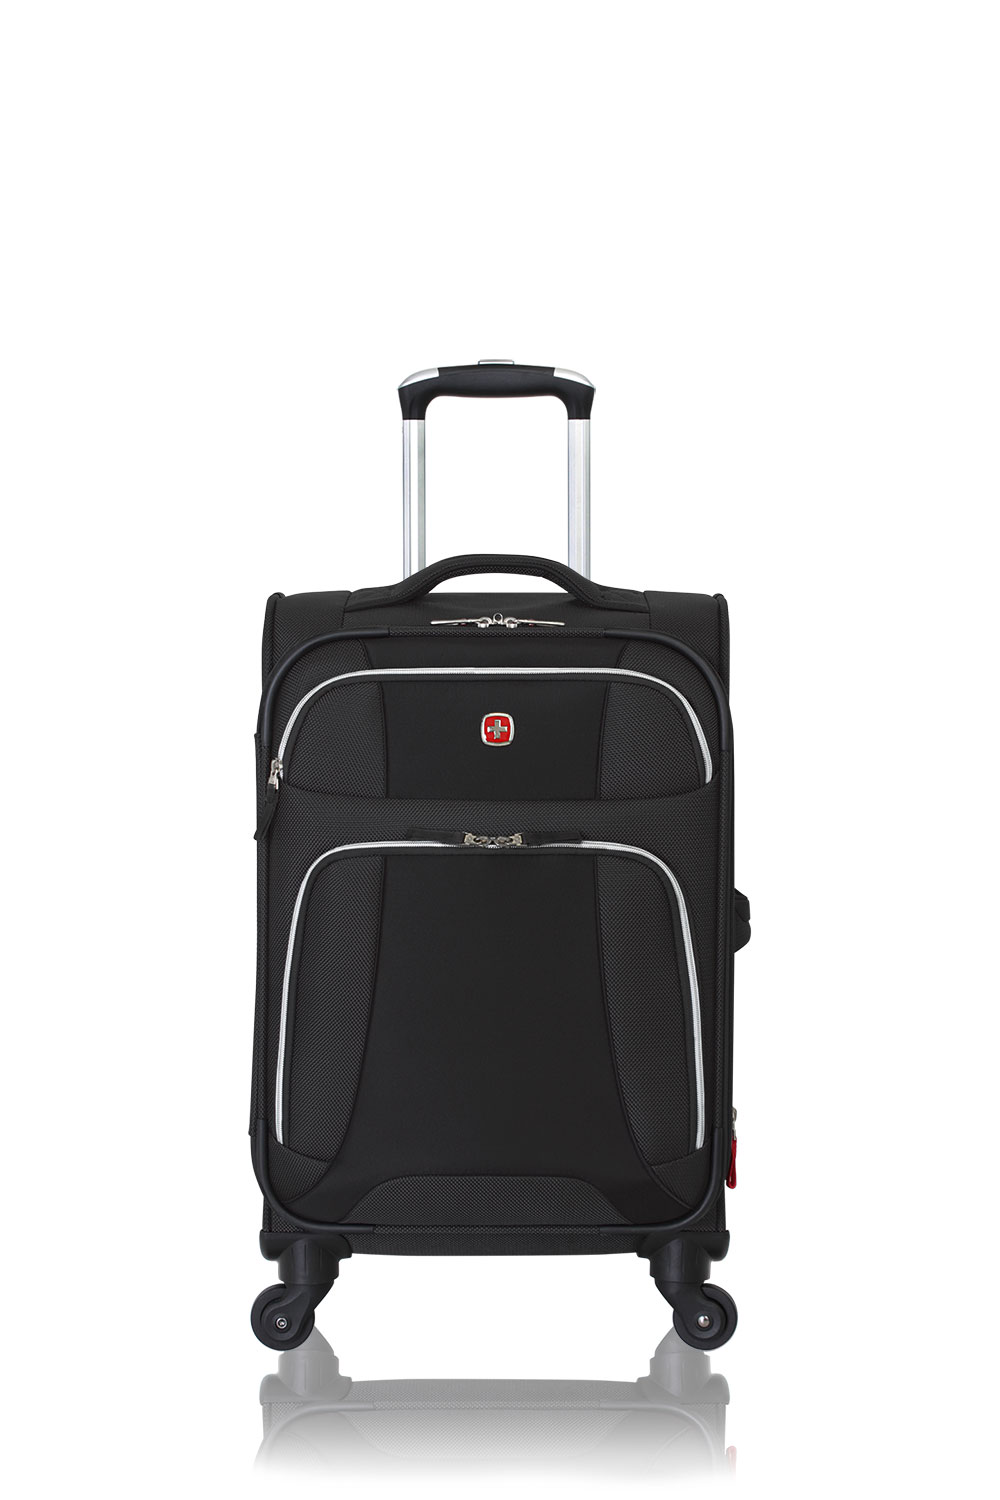 """SWISSGEAR 7362 20"""" Expandable Liteweight Carry-On Spinner - Black Luggage"""